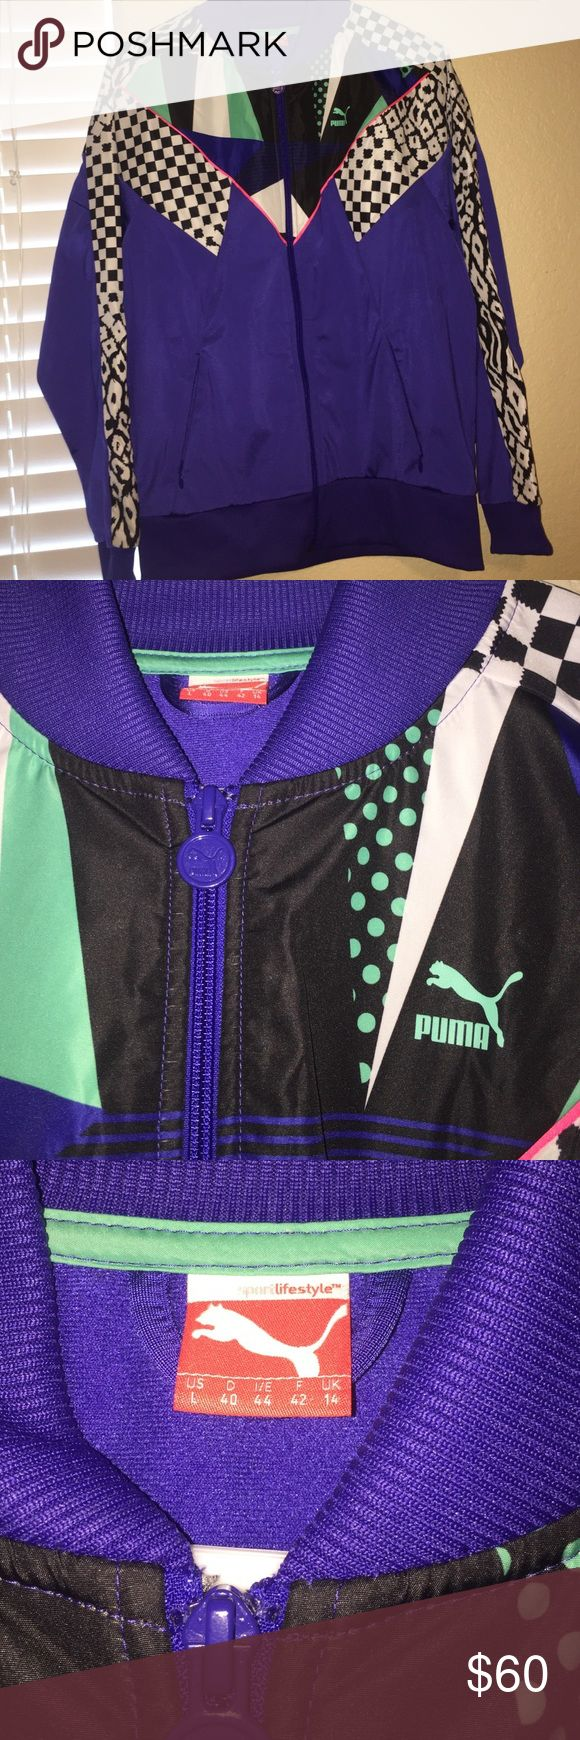 PUMA SPORT JACKET. OFFERS WELCOME. NWOT. Purchased in Italy. Puma Jackets & Coats